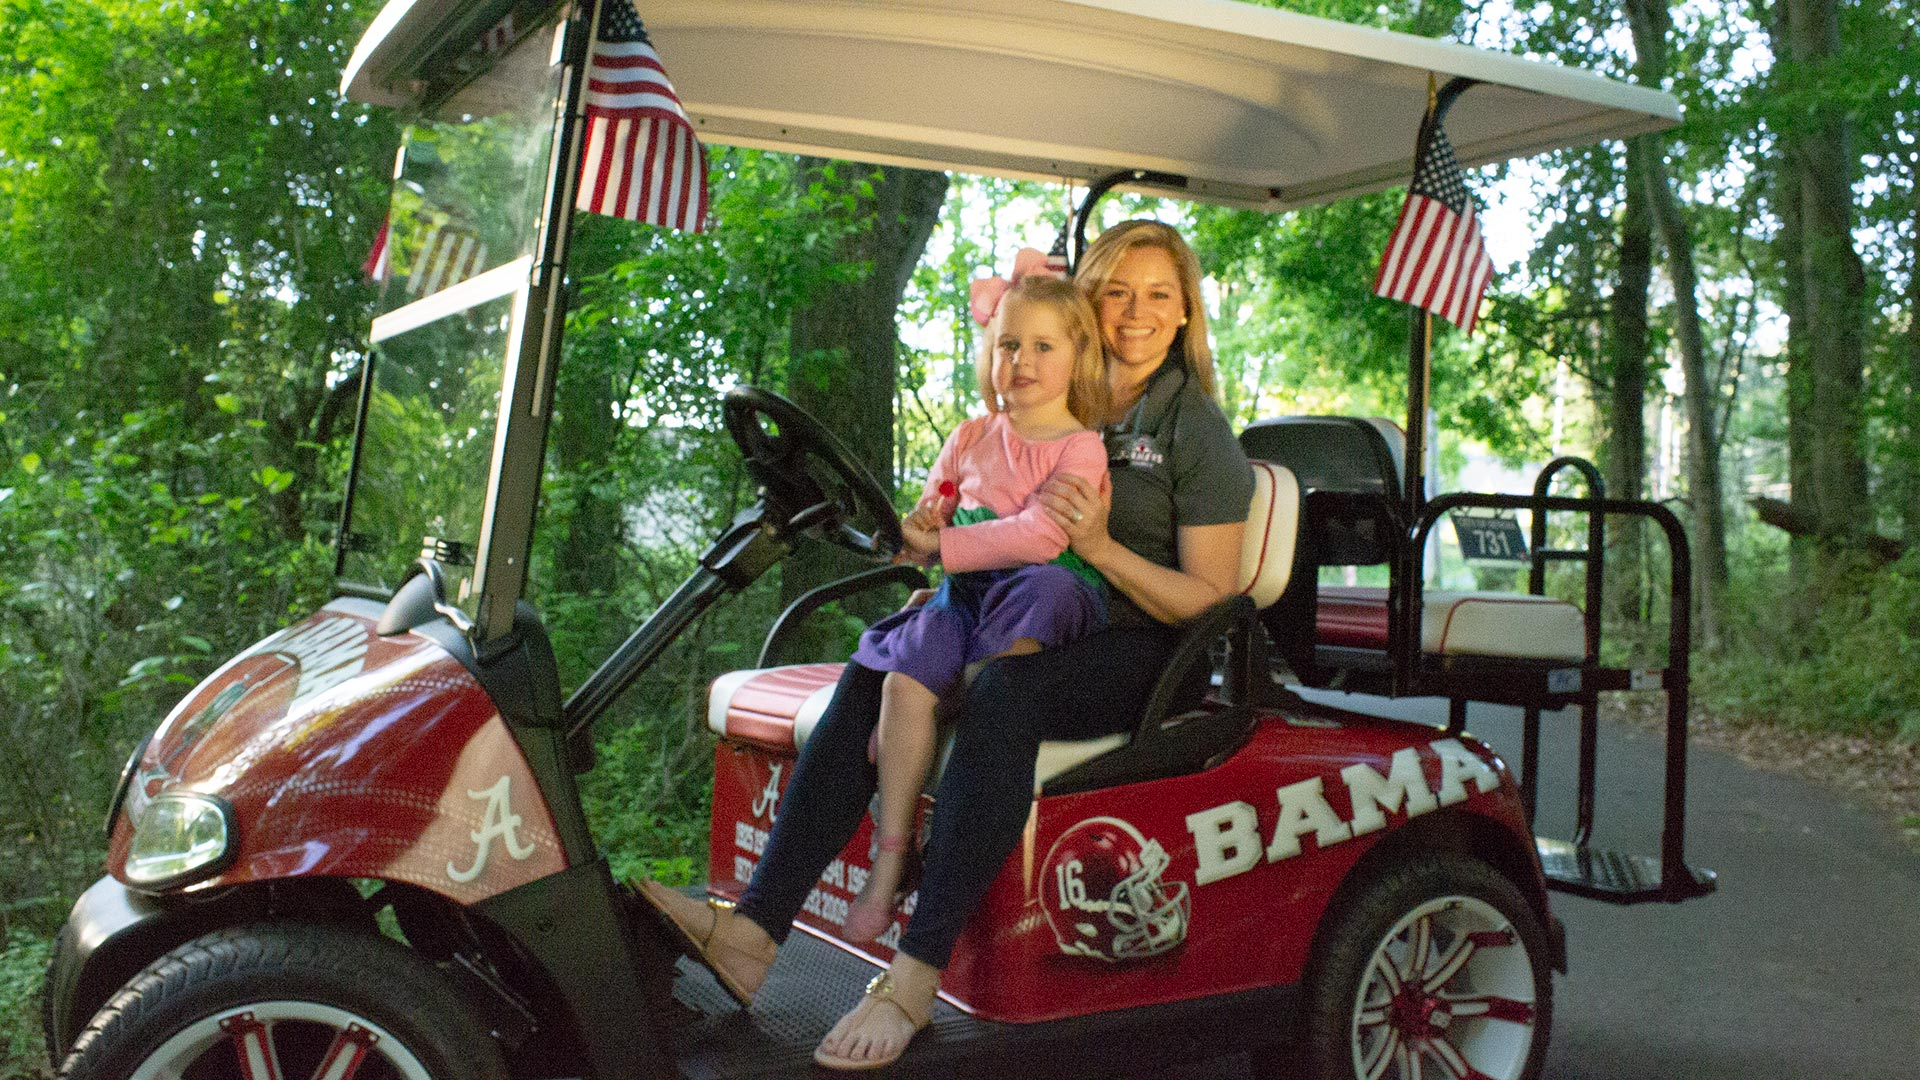 This is our Alabama cart.